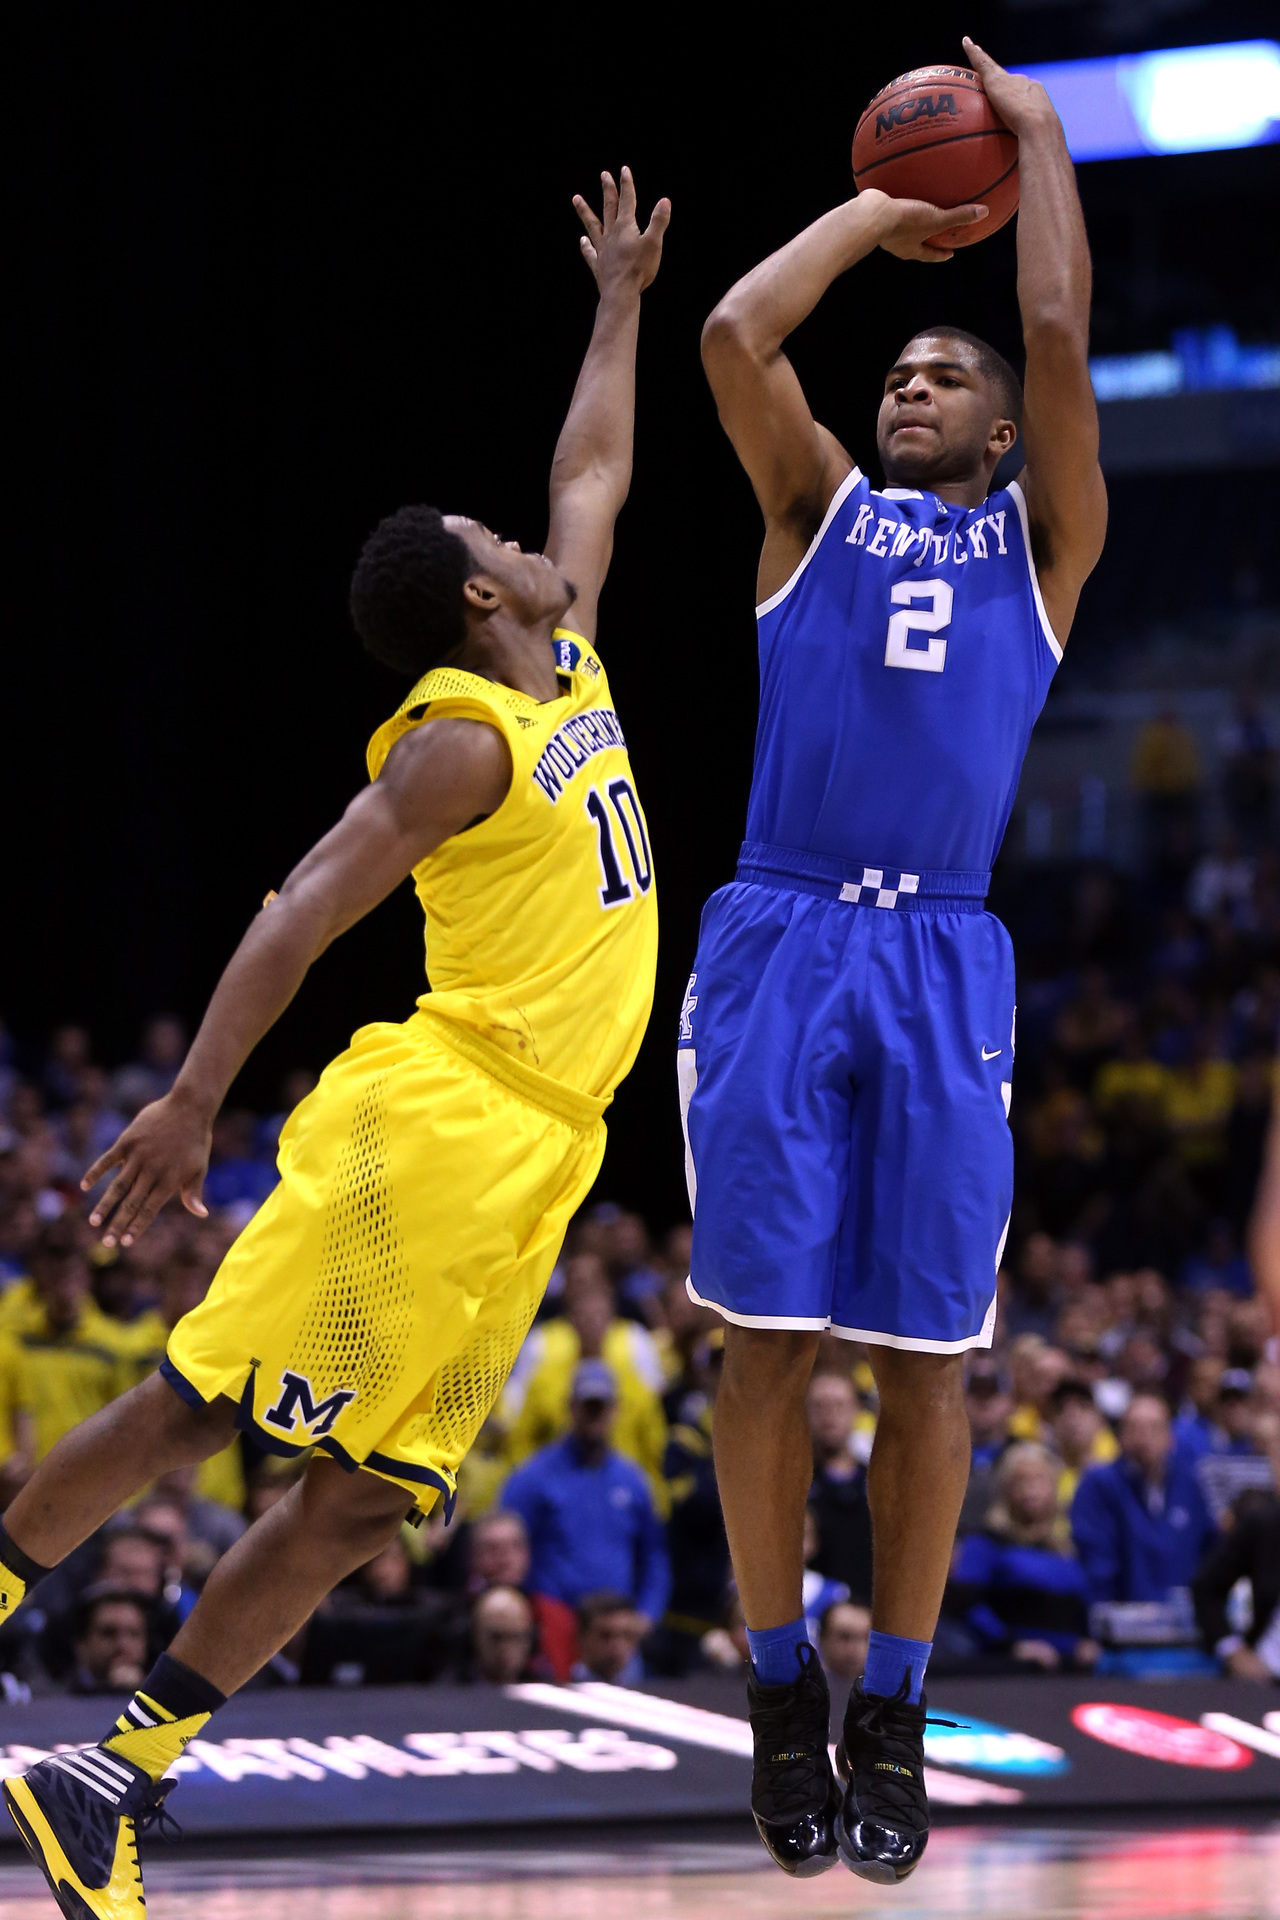 Aaron Harrison, Kentucky Wildcats